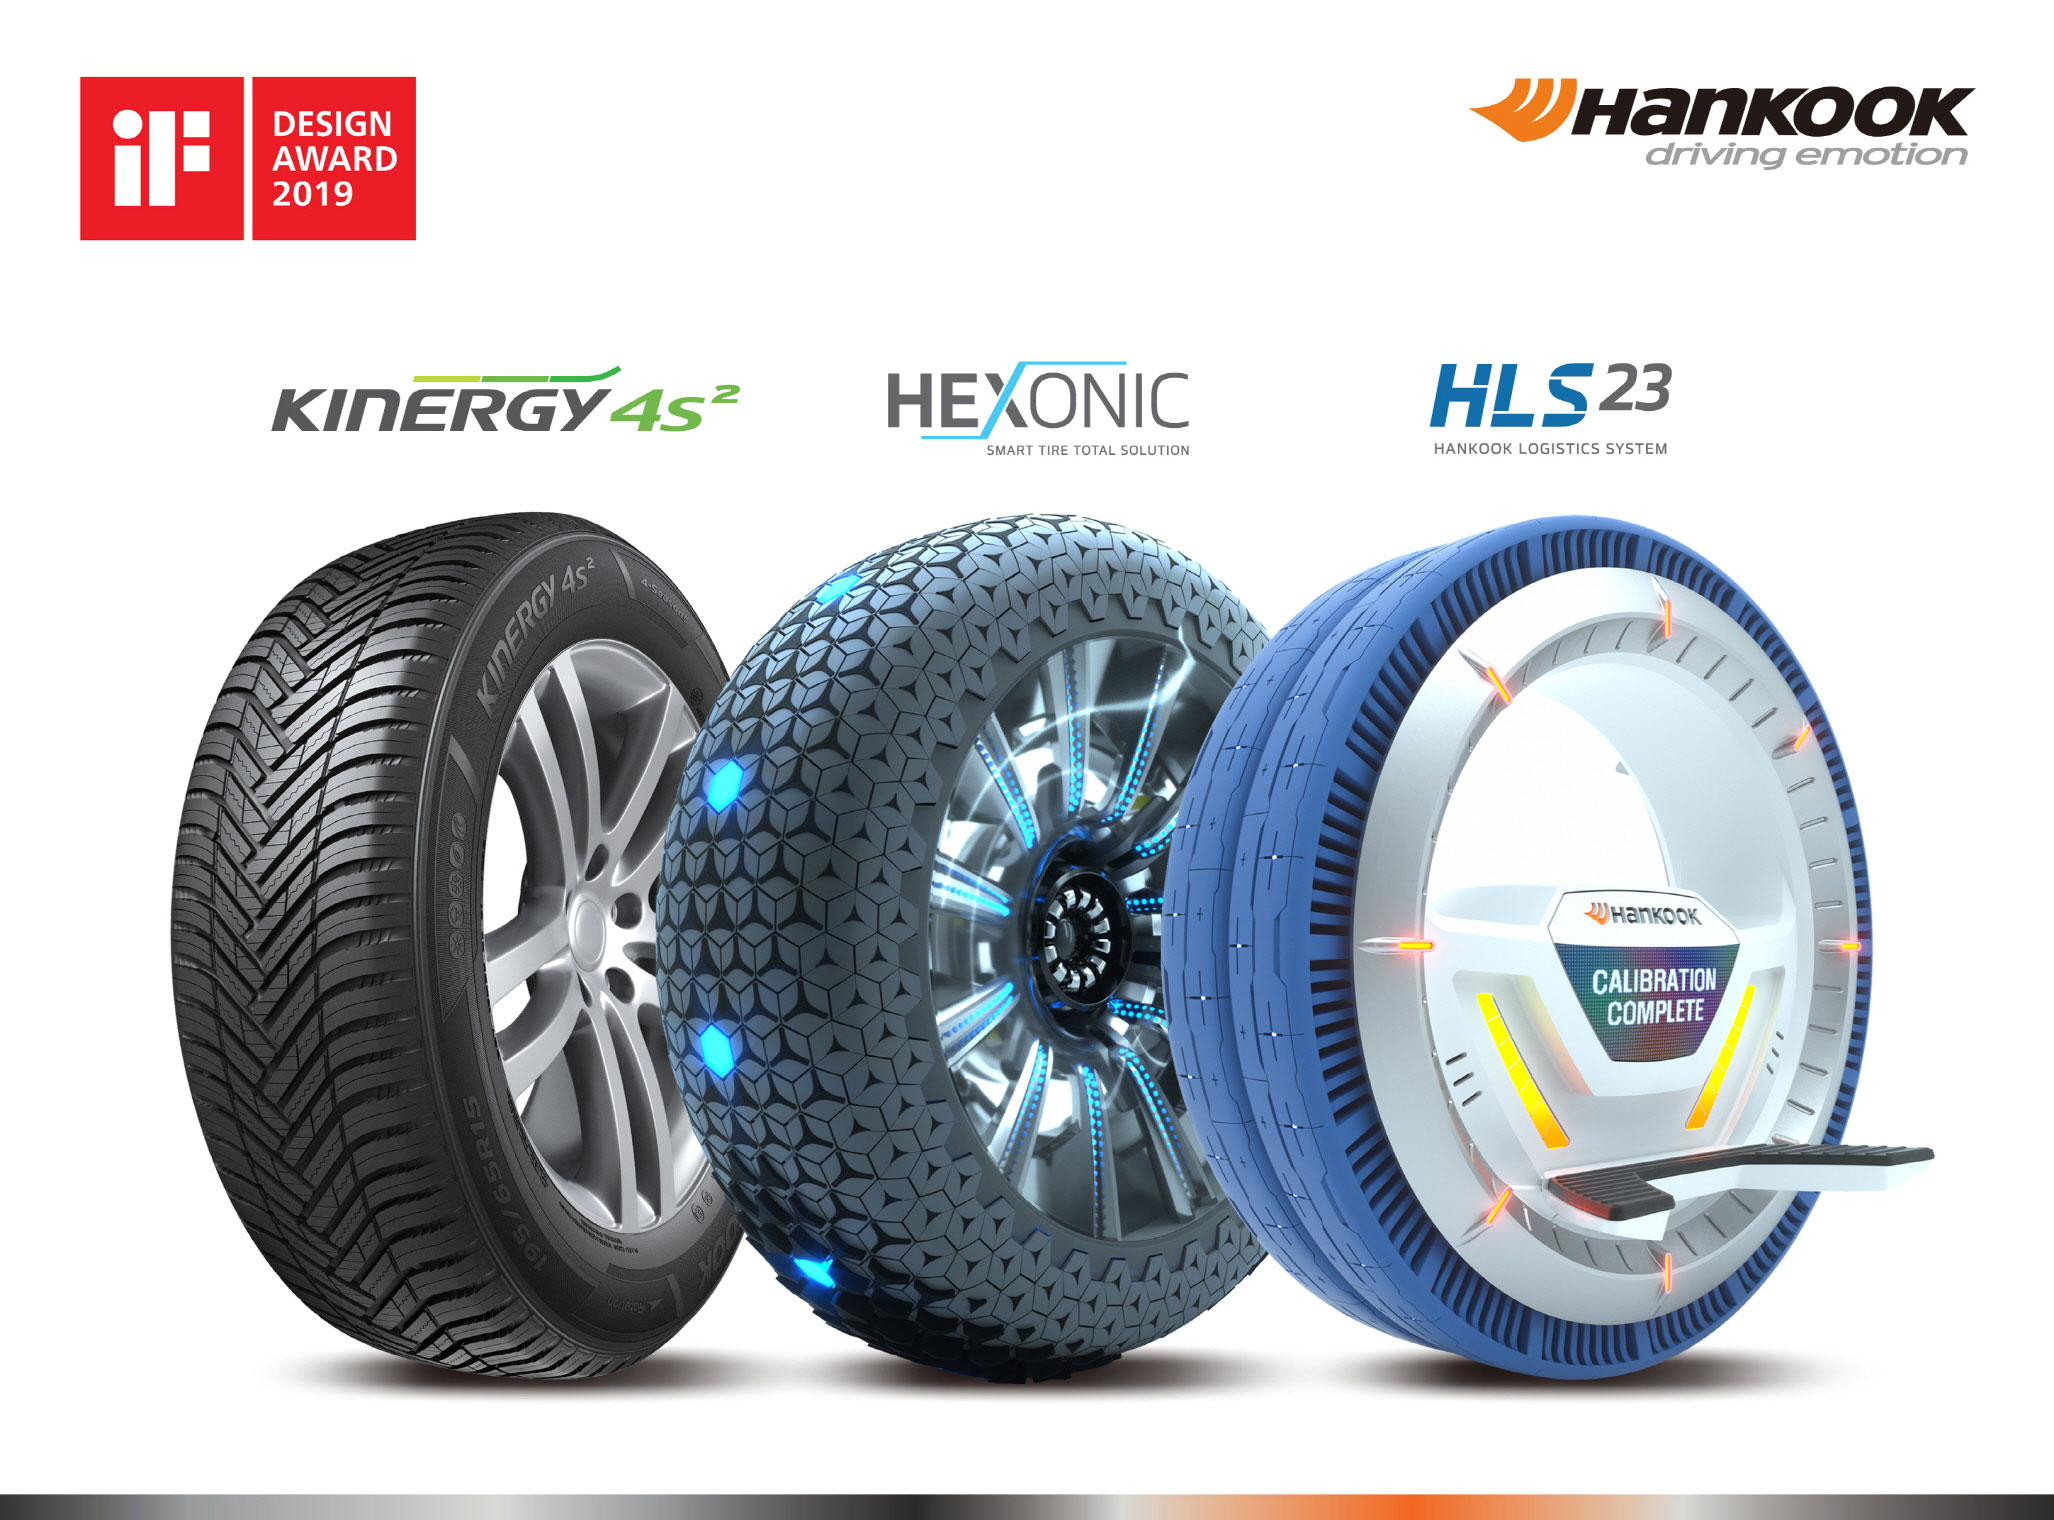 hankook design award 2019